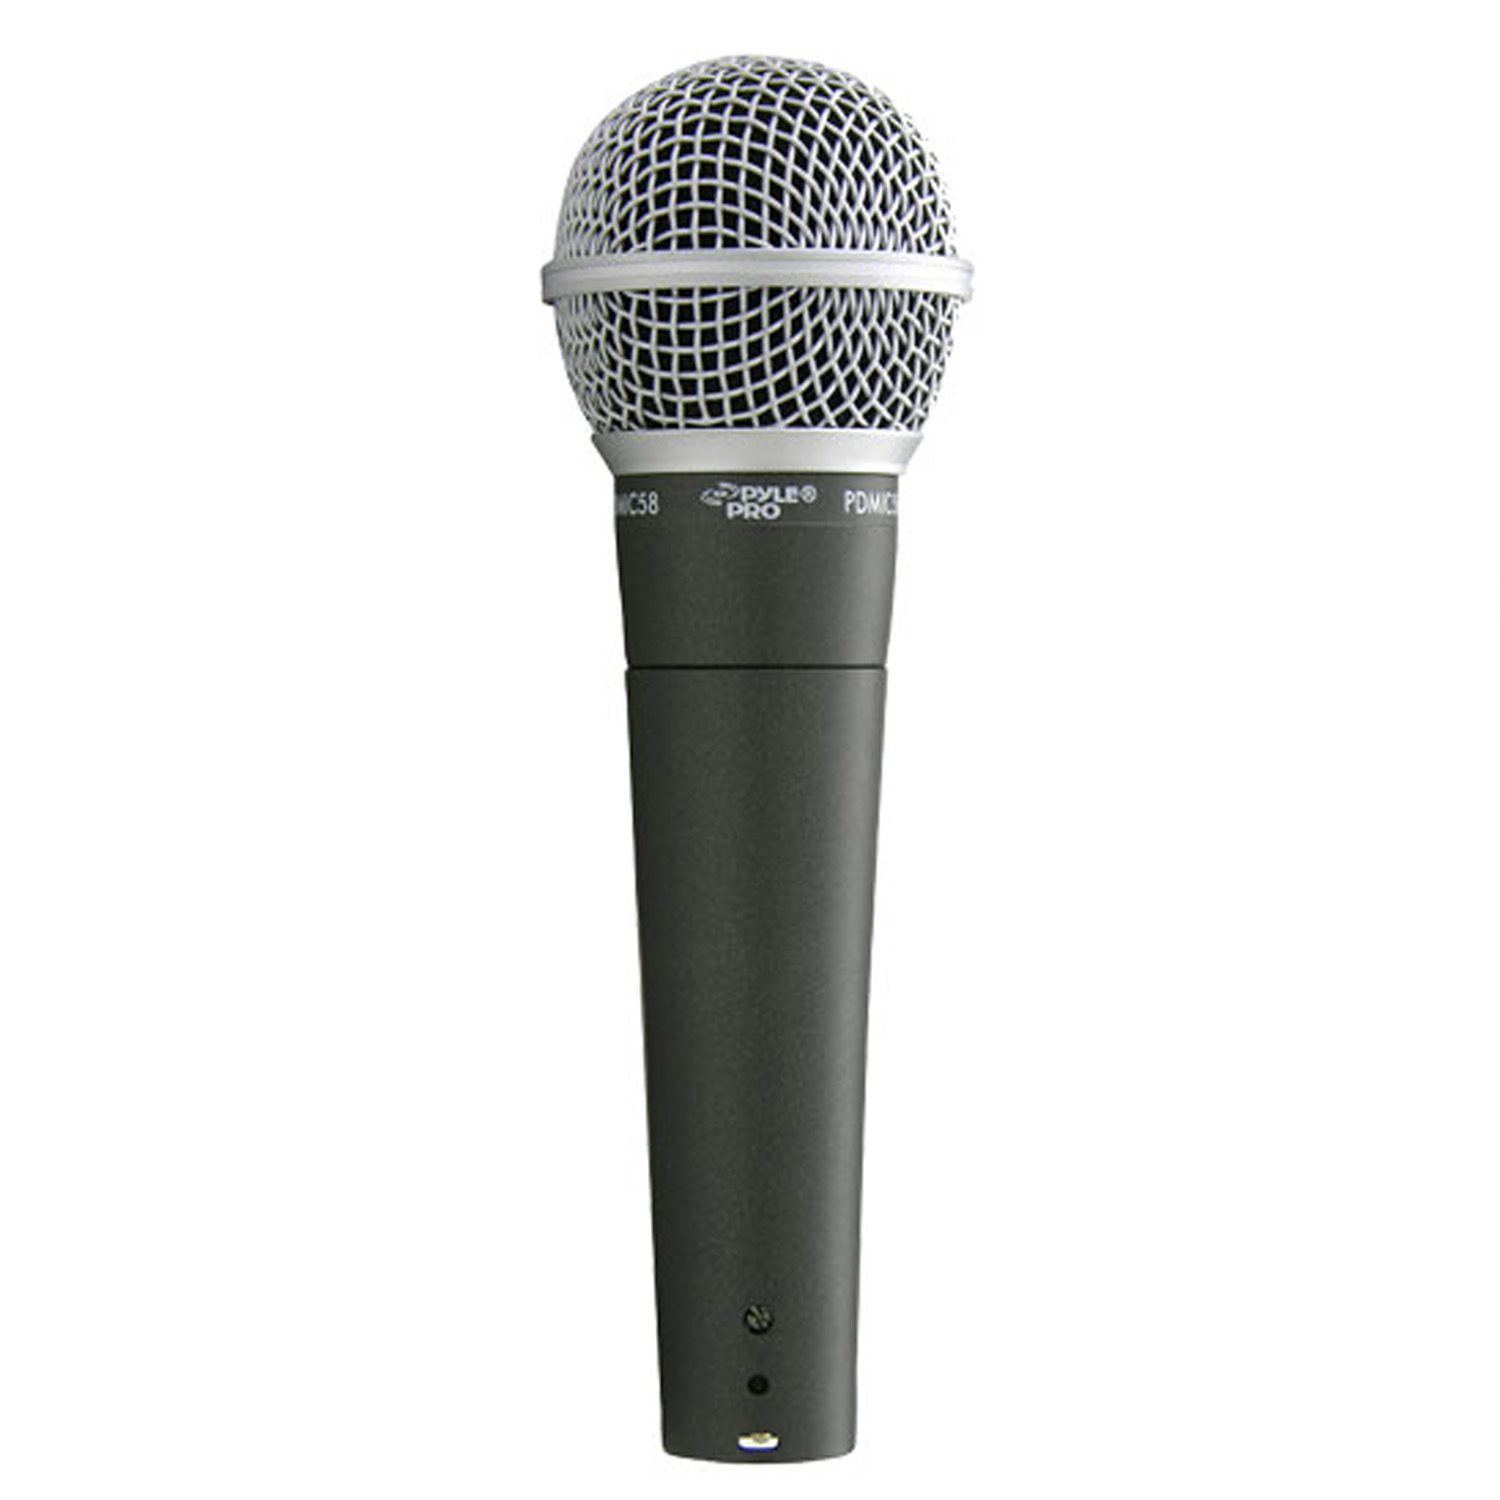 PylePro - PDMIC58 - Professional Moving Coil Dynamic Handheld Microphone